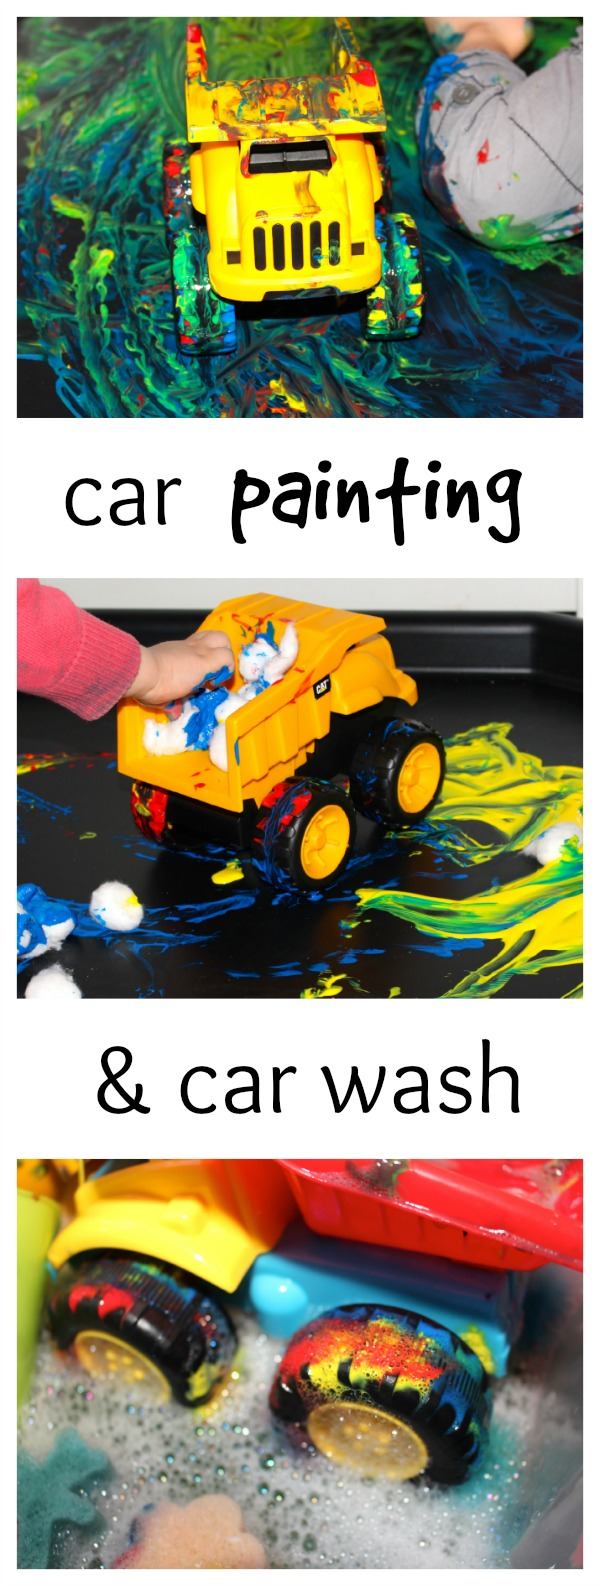 Painting with toy cars- process art for toddlers and preschoolers